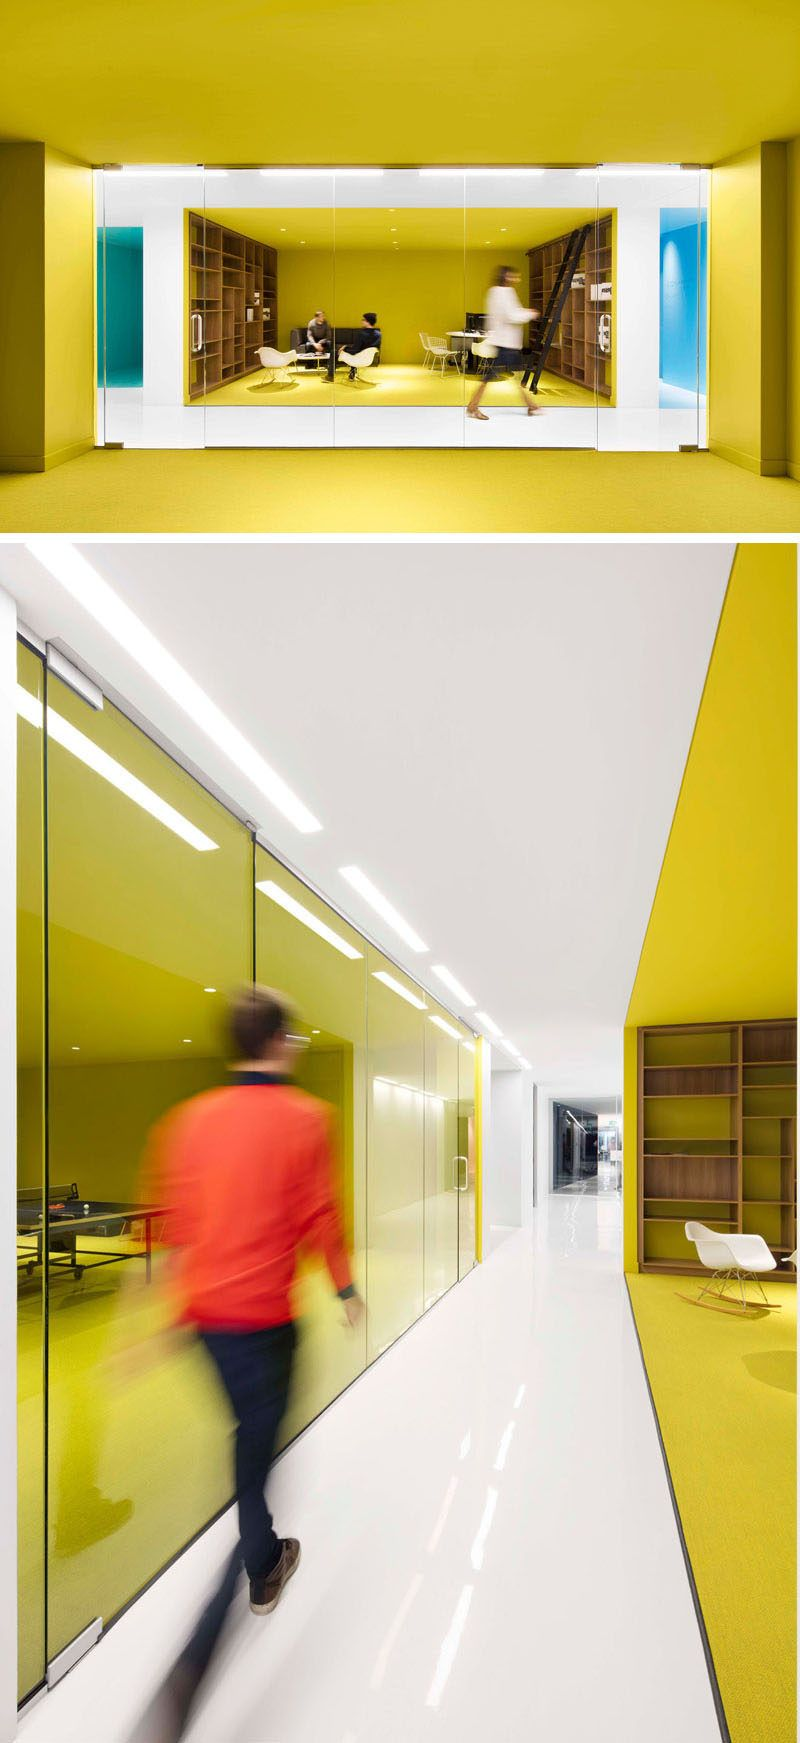 This Office Interior Used Color To Create Distinct Spaces | Open ...